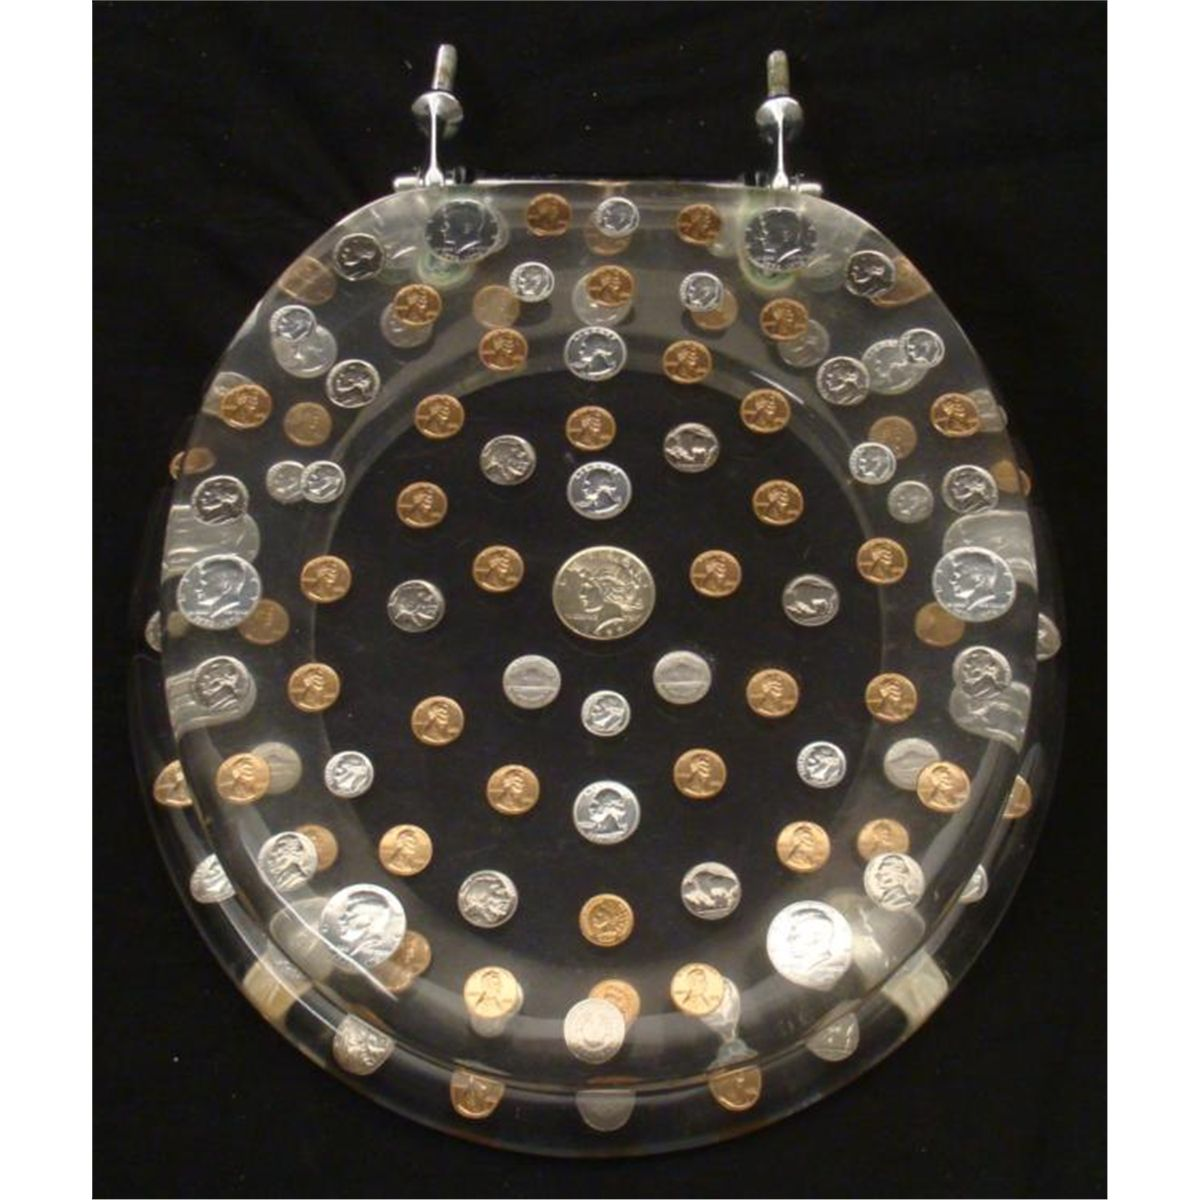 Throne of Coins Rare Novelty Pop Art Toilet Seat